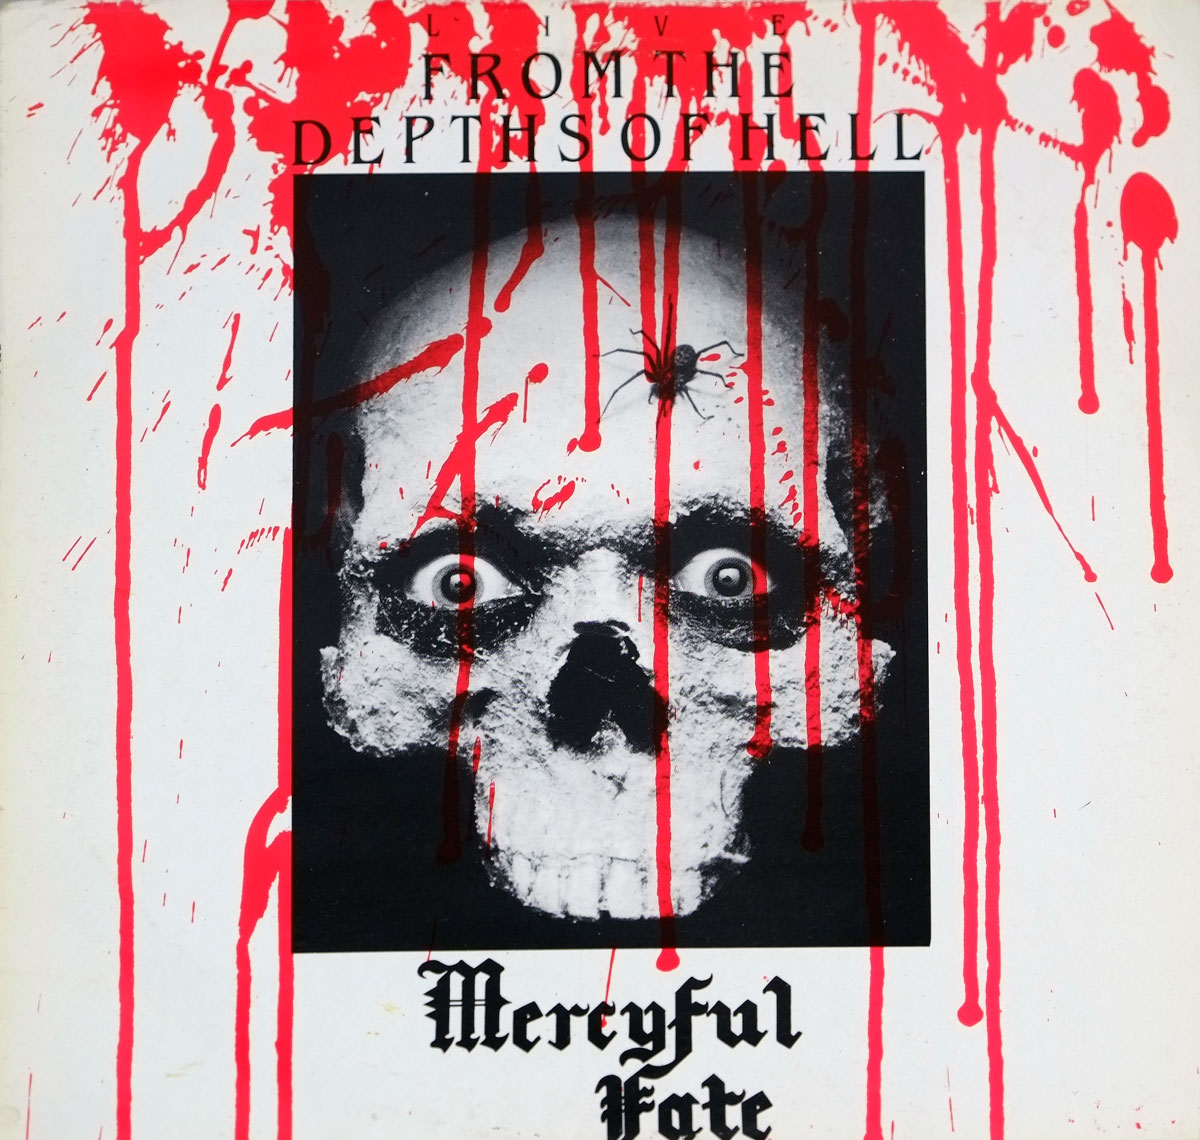 "MERCYFUL FATE LIVE FROM THE DEPTH OF HELL 12"" LP VINYL"